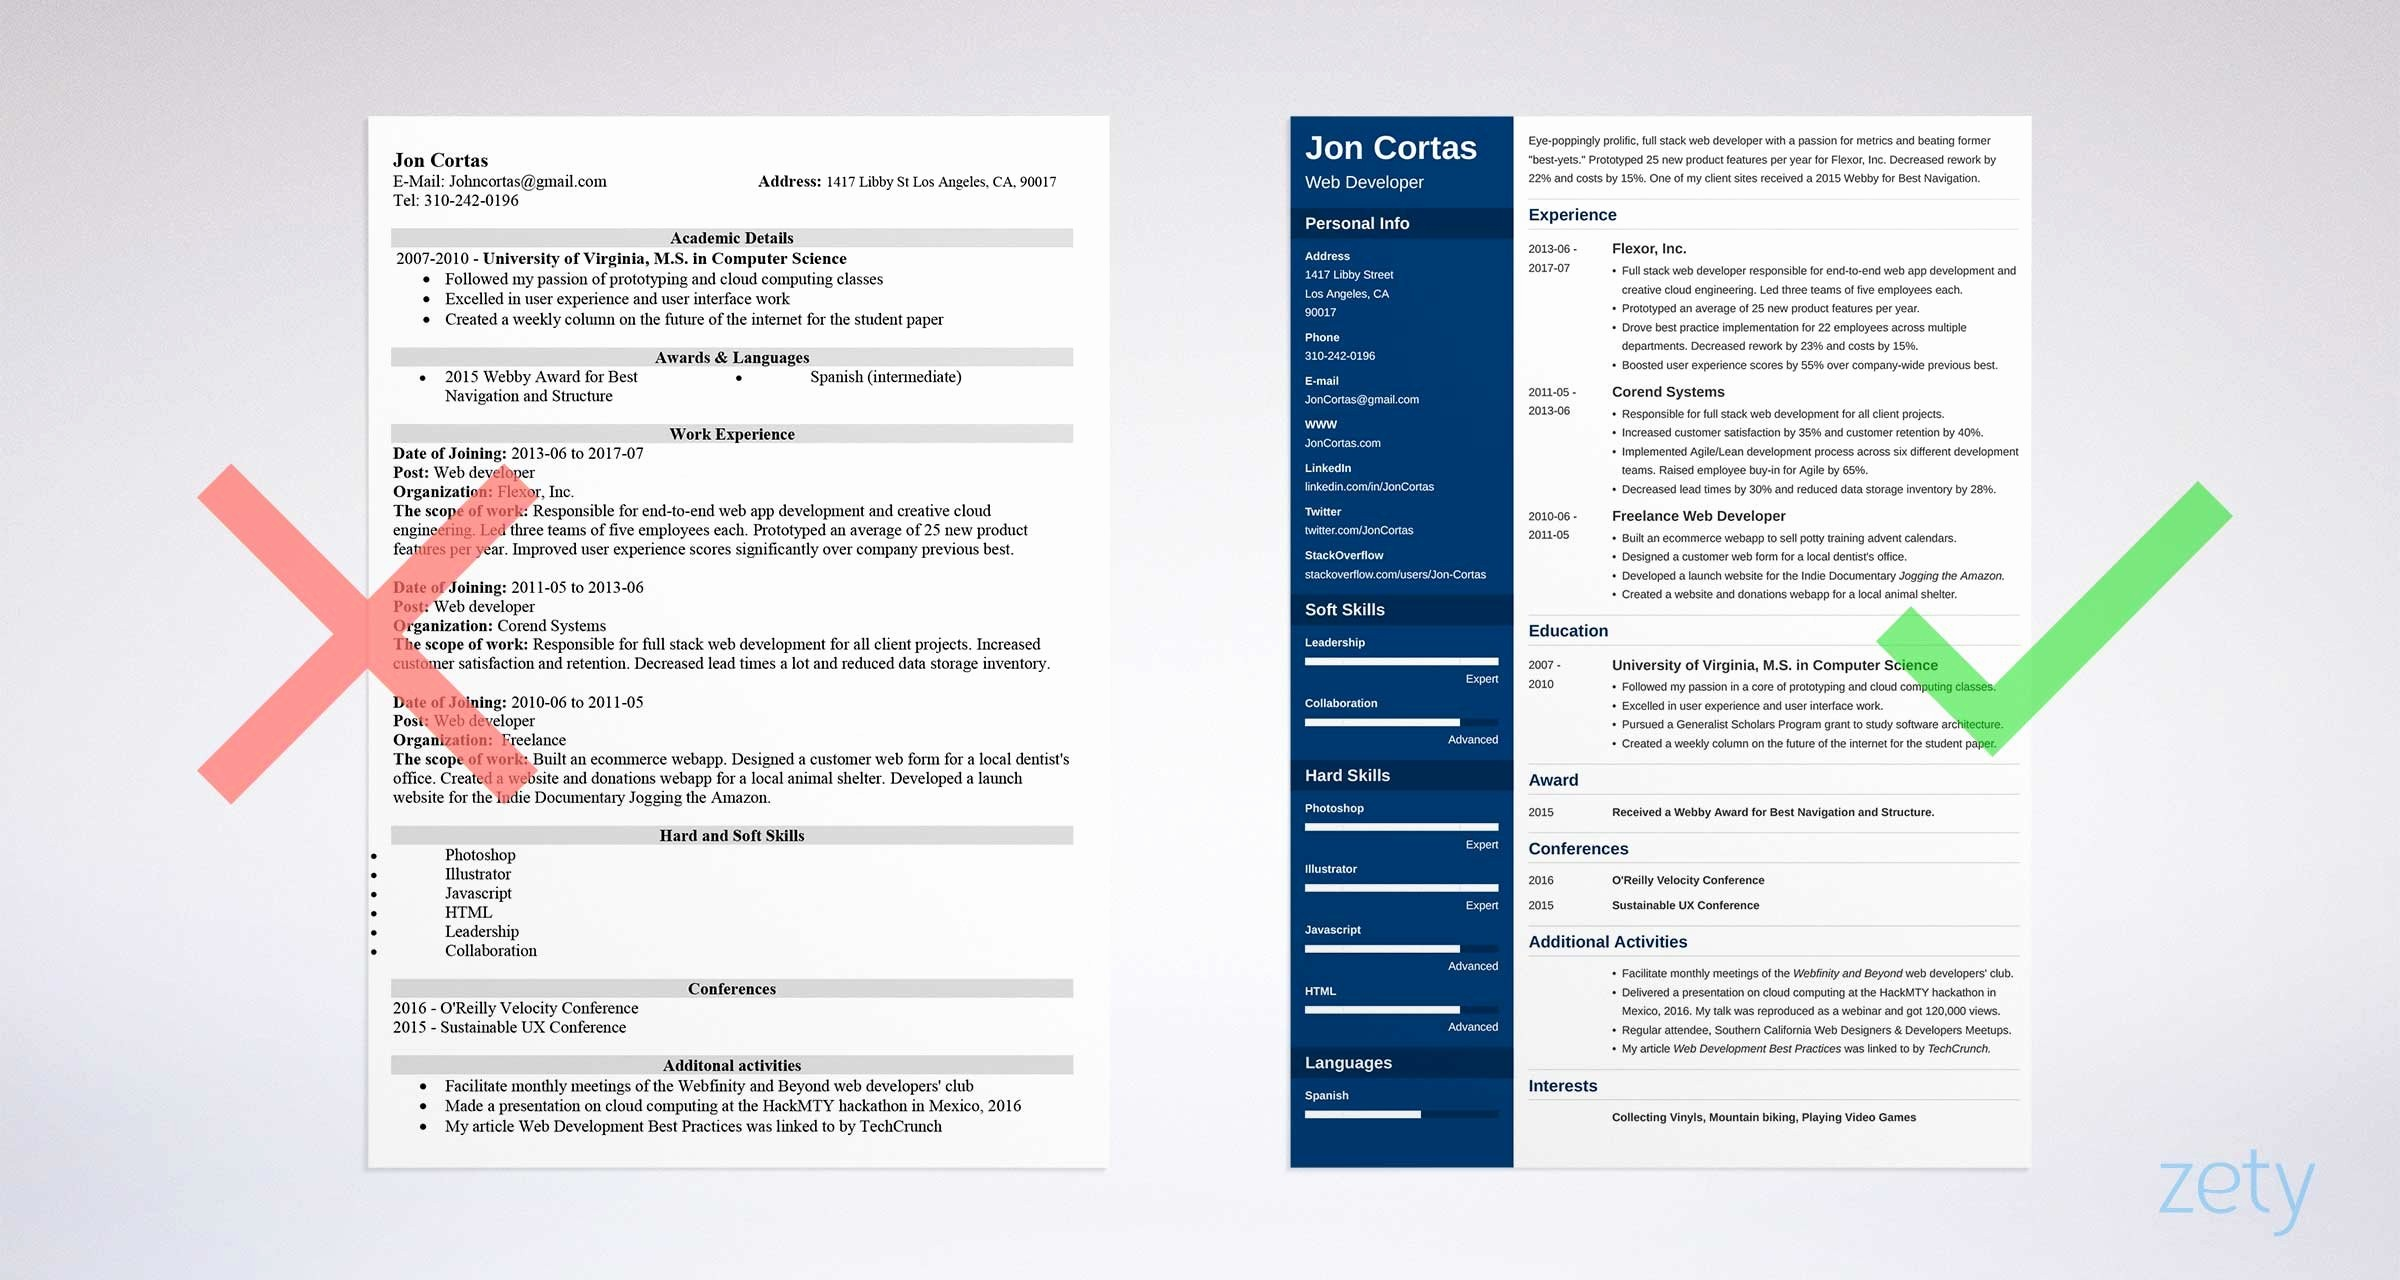 Resume Examples In Word format Elegant Resume Templates Word 15 Free Cv Resume formats to Download